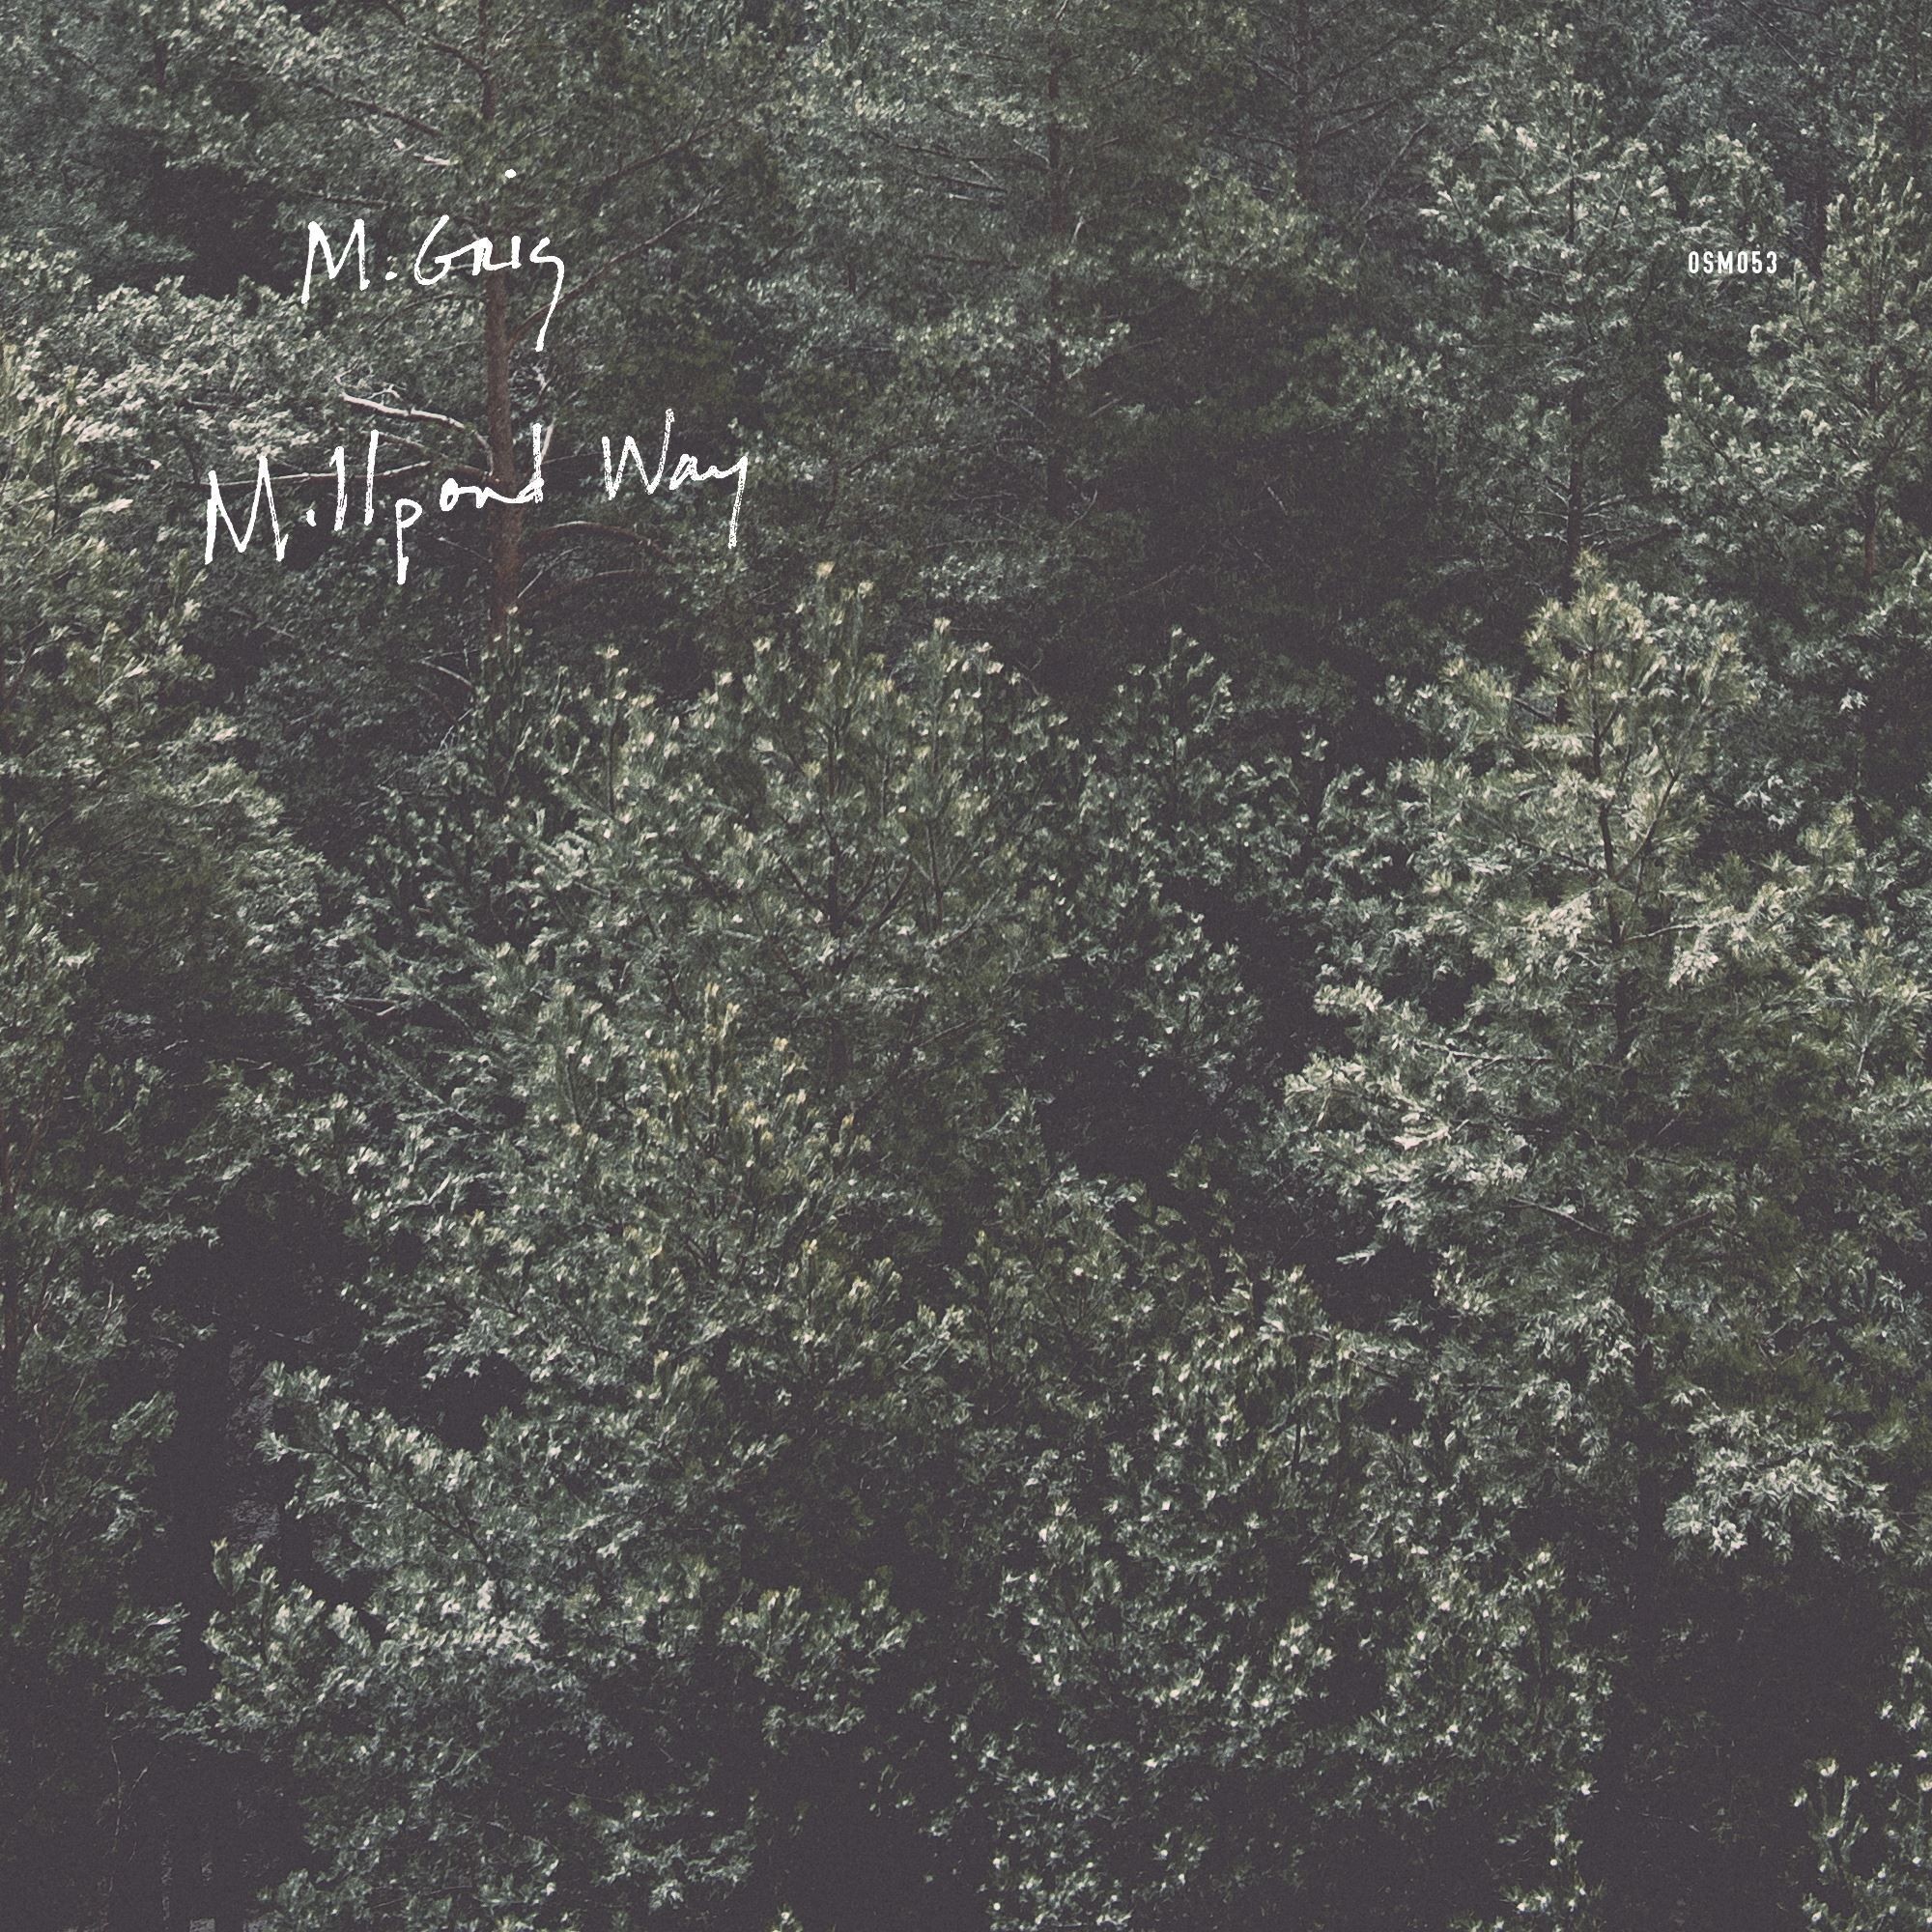 MILLPOND WAY   Other Songs, 2018